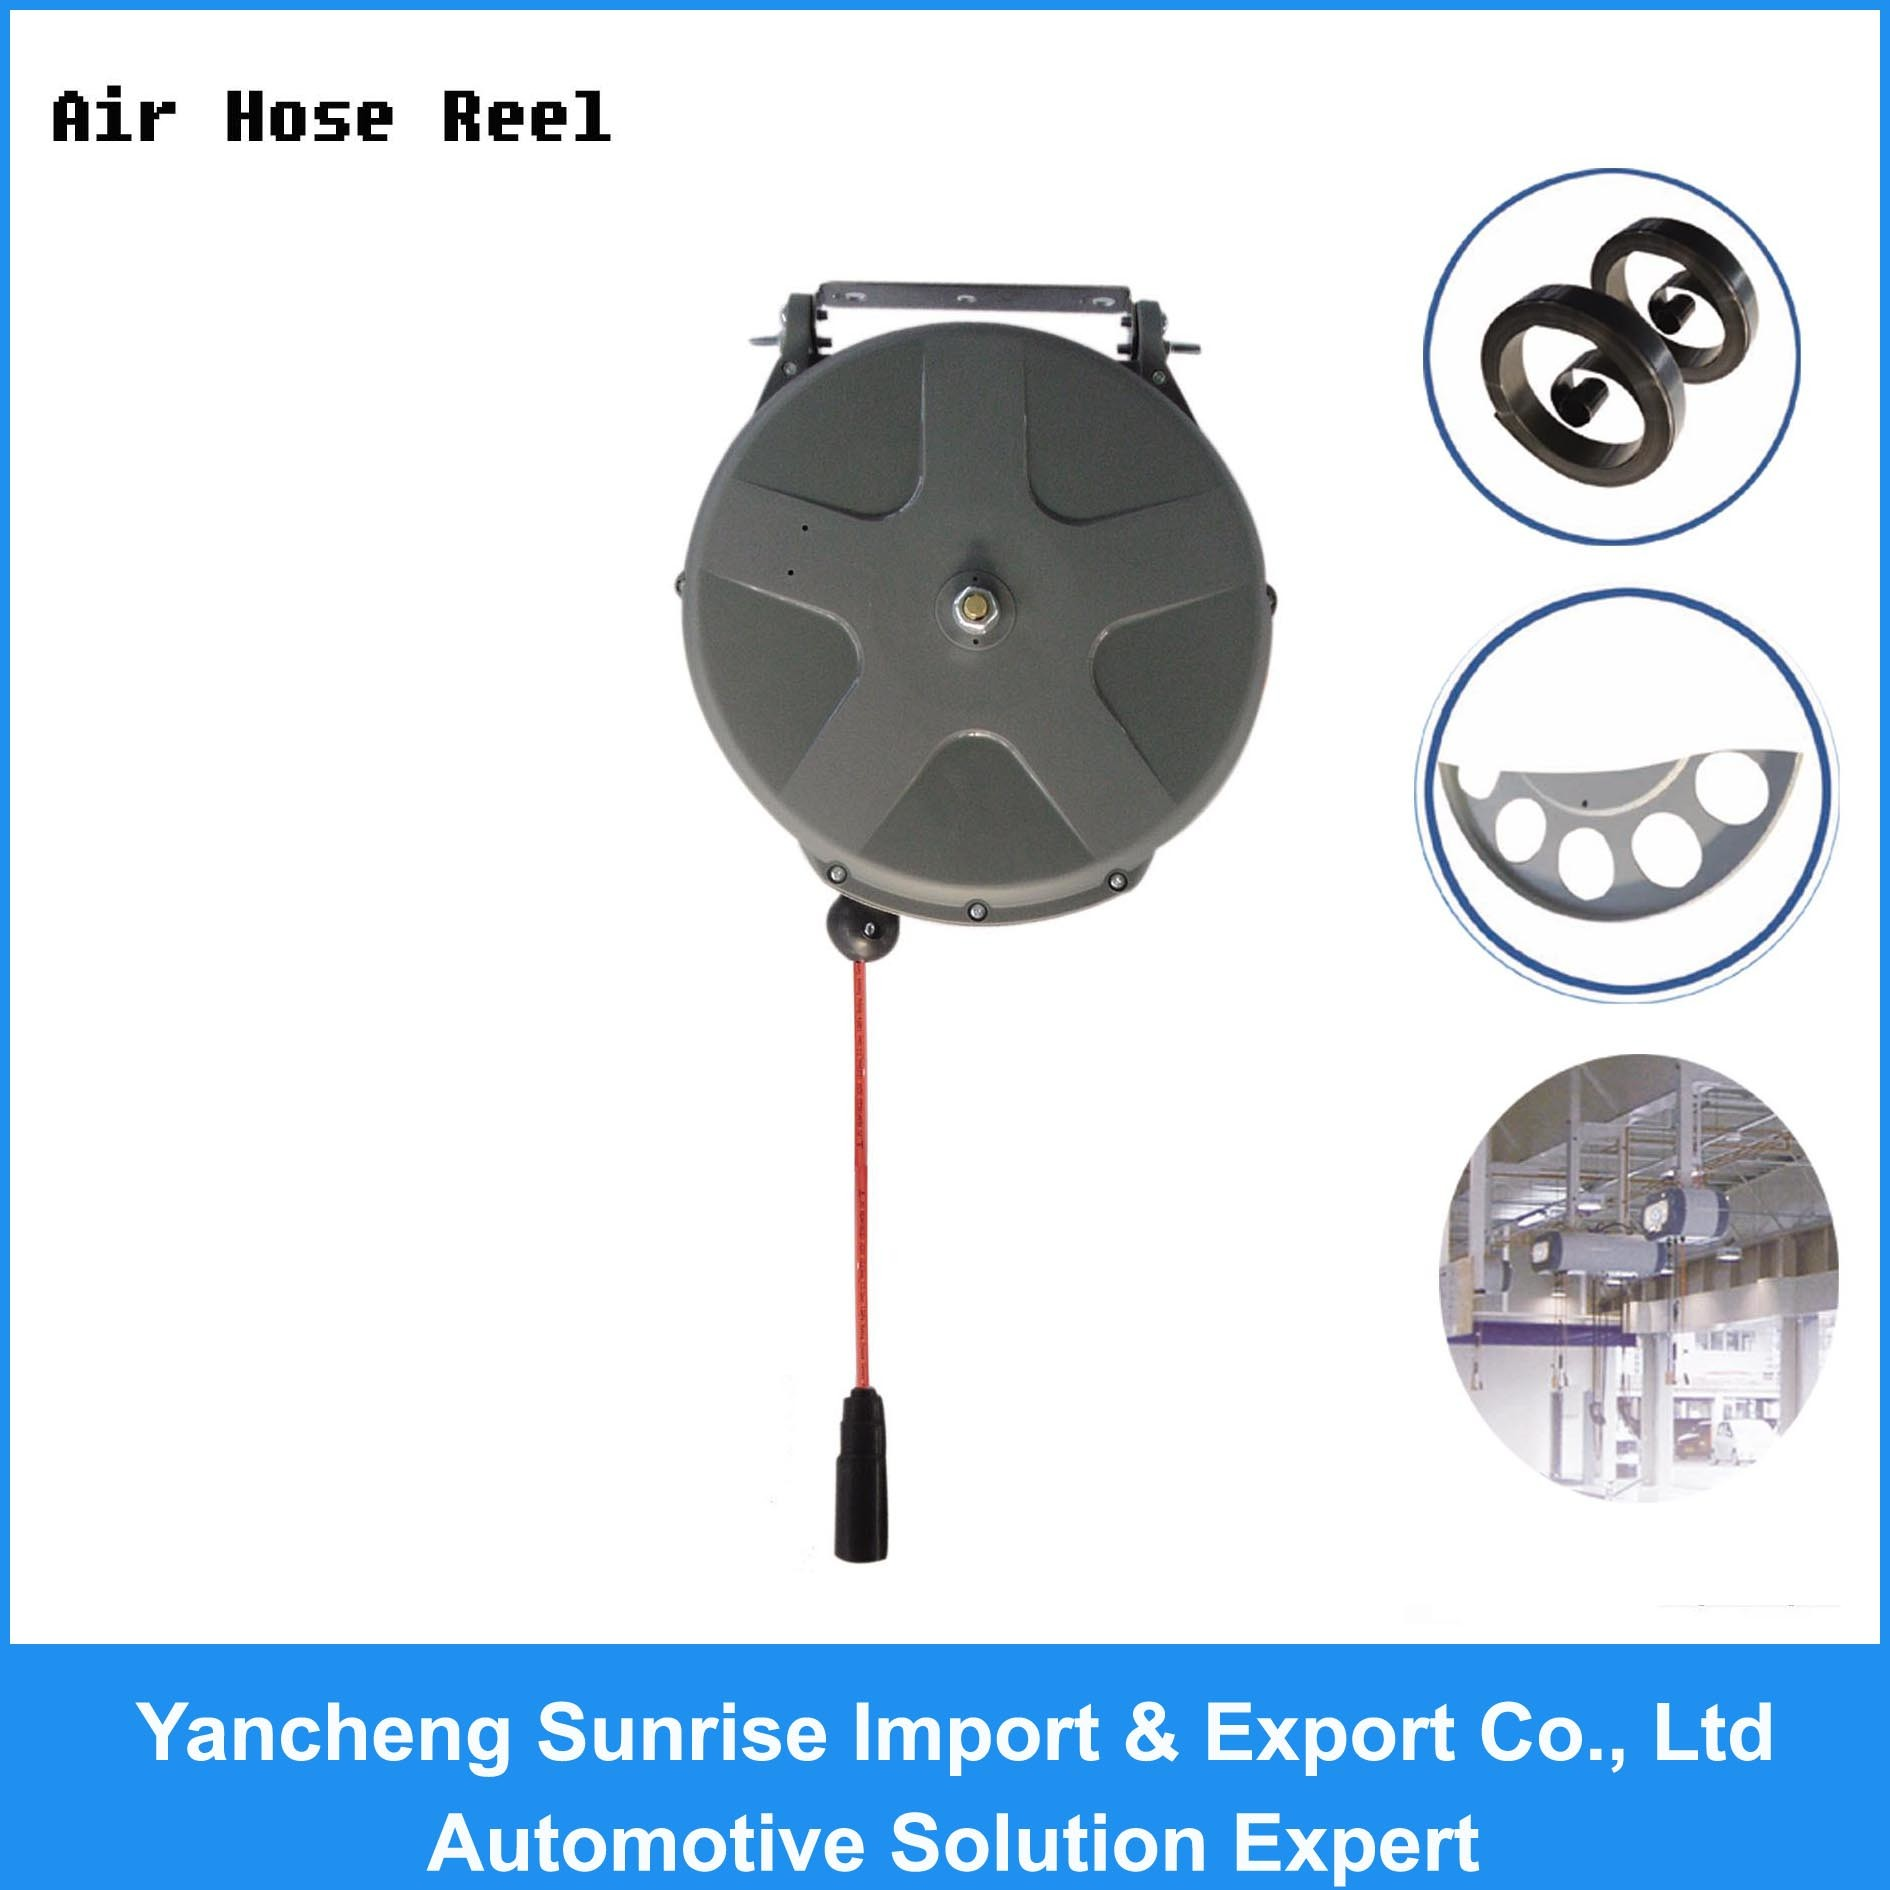 2017 New Type of Air Hose Reel (THR-2810)